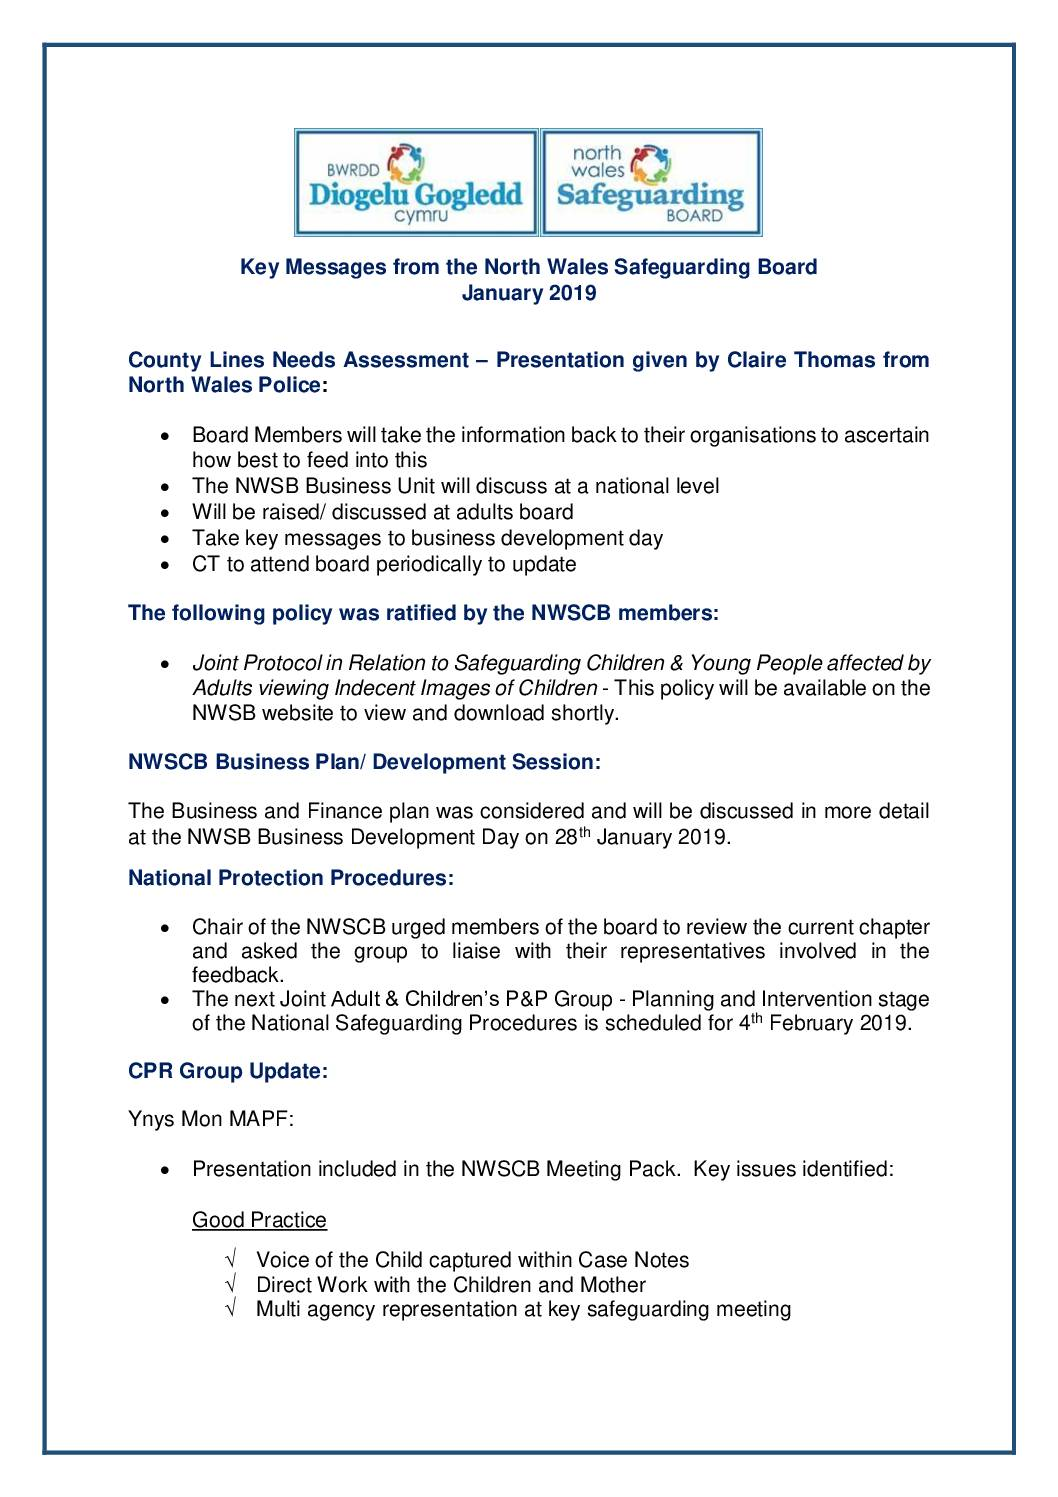 Key Messages NWSCB January 2019